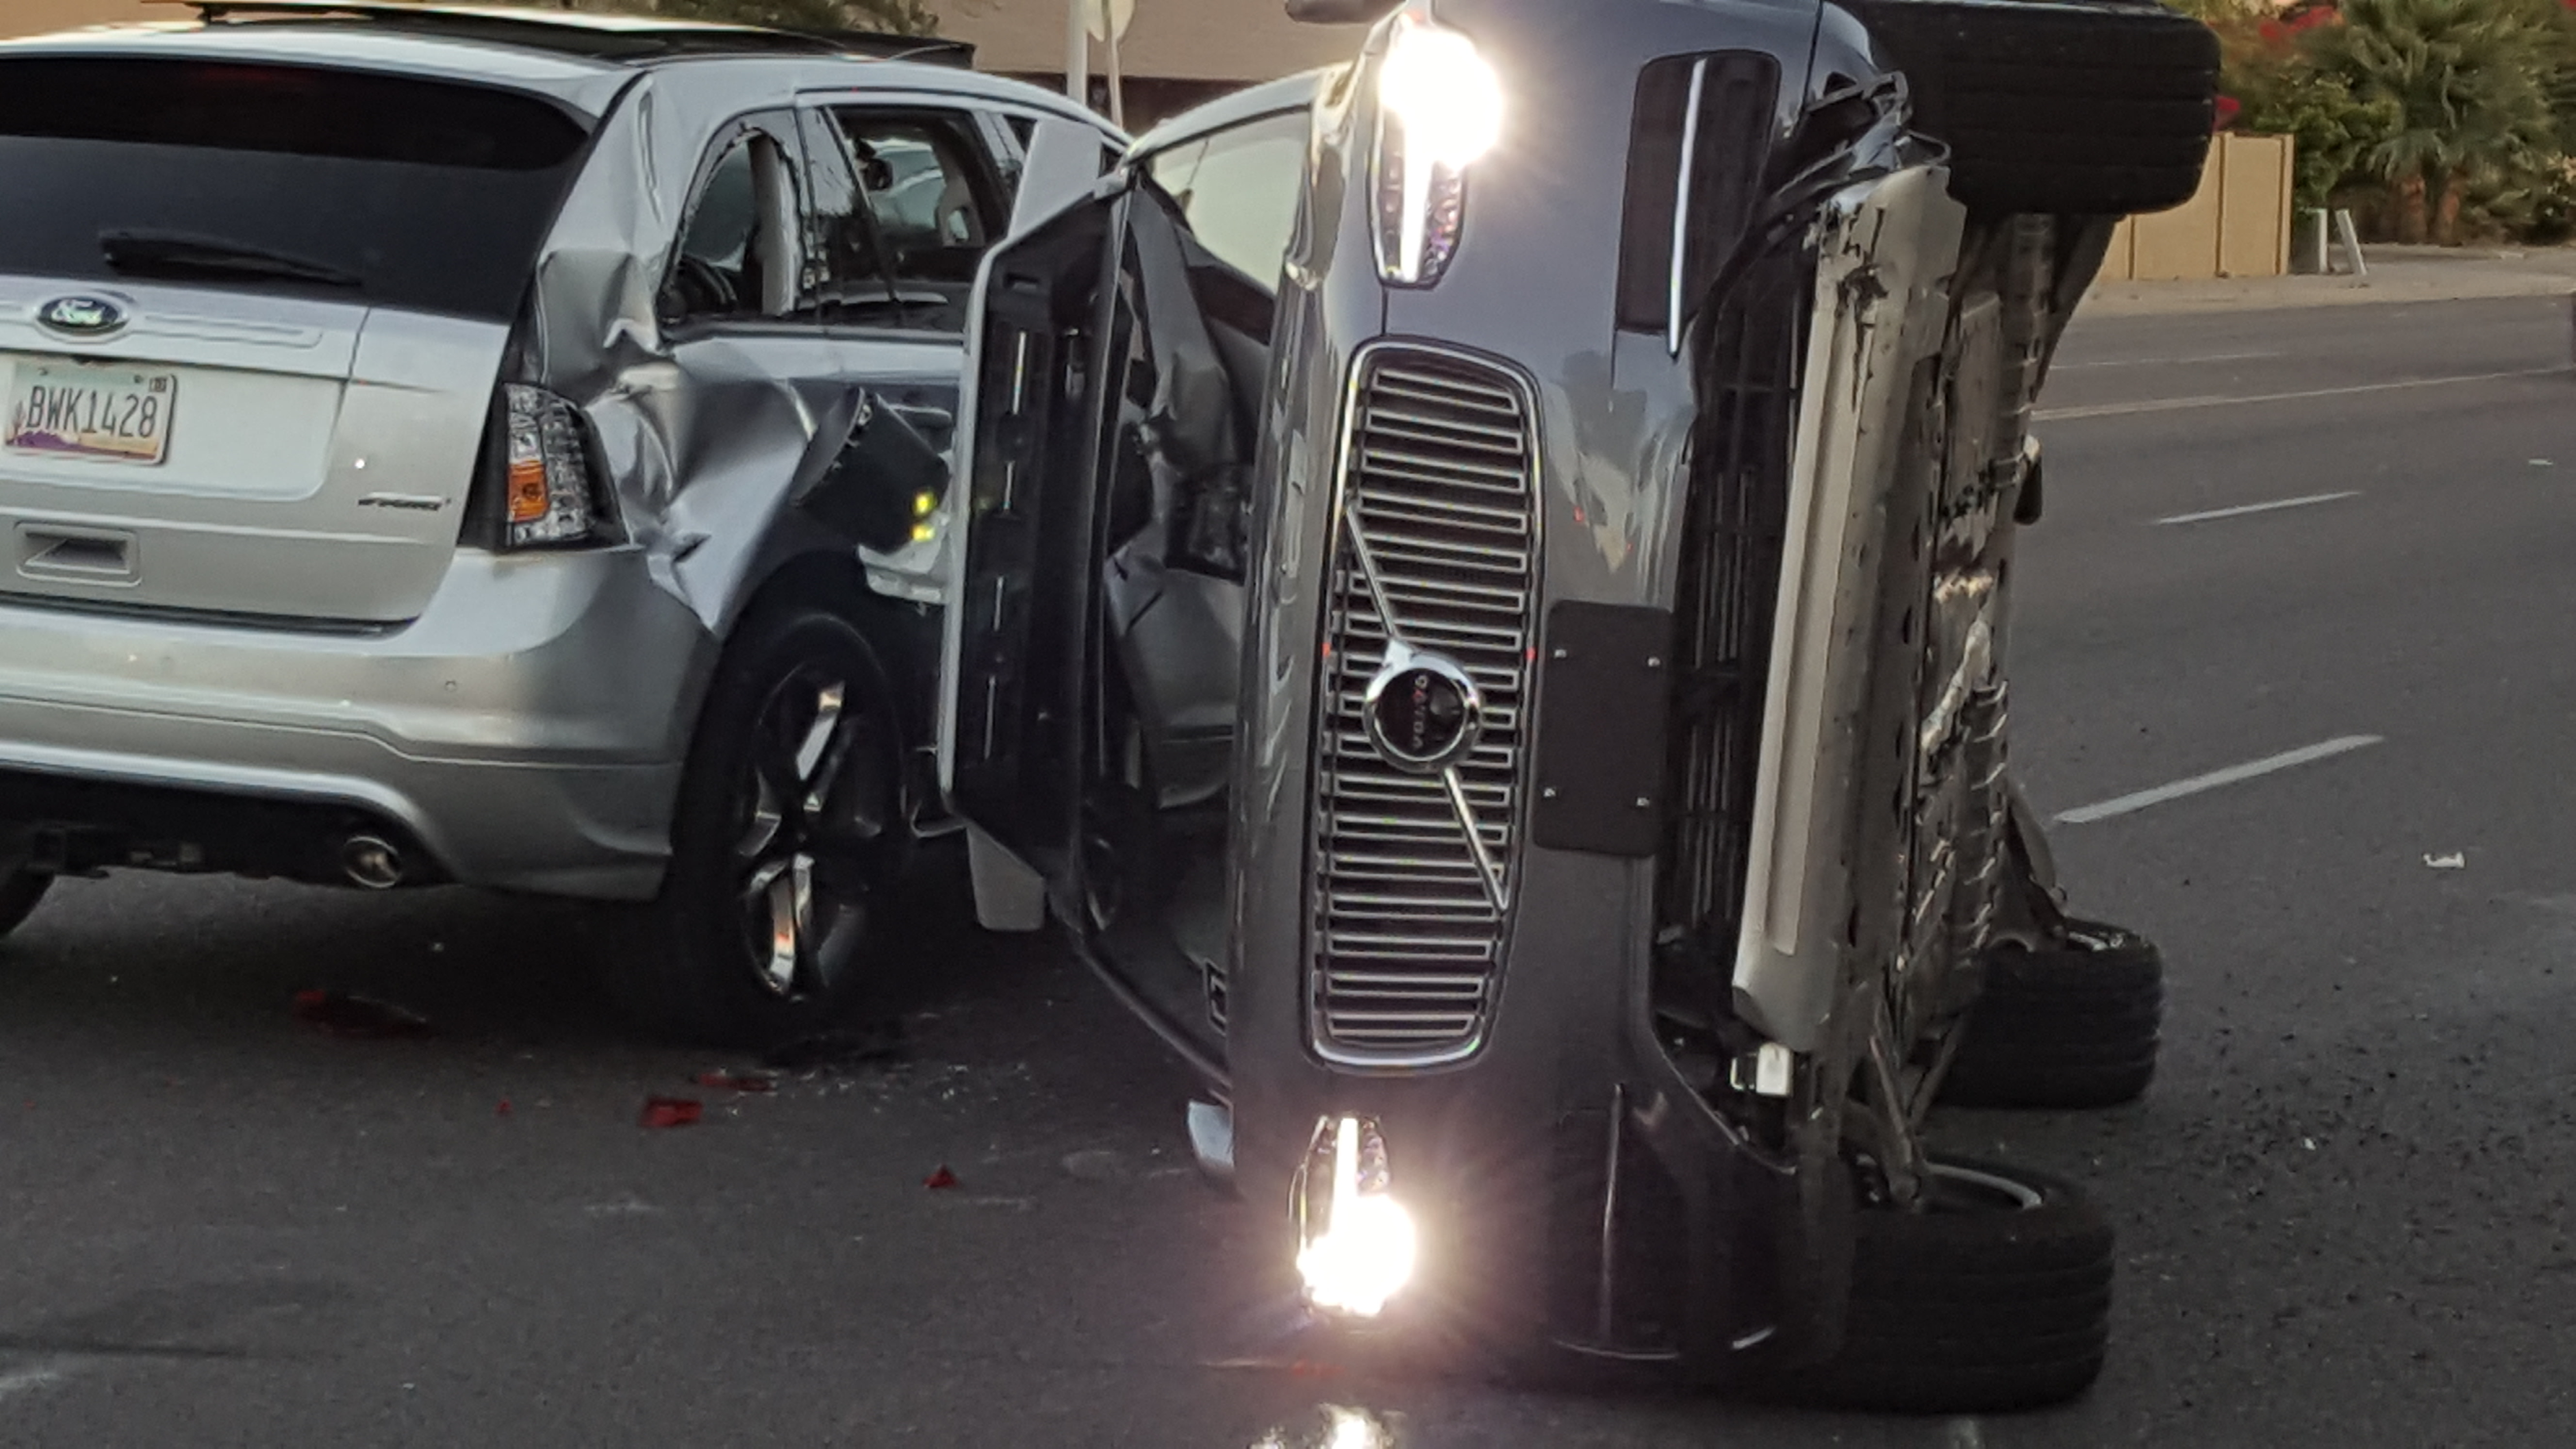 A self-driven Volvo SUV owned and operated by Uber Technologies Inc. is flipped on its side after a collision in Tempe, Arizona, U.S. on March 24, 2017. Picture taken on March 24, 2017.   Courtesy FRESCO NEWS/Mark Beach/Handout via REUTERS  ATTENTION EDITORS - THIS IMAGE WAS PROVIDED BY A THIRD PARTY. EDITORIAL USE ONLY.  MANDATORY CREDIT. - RTX32PLW